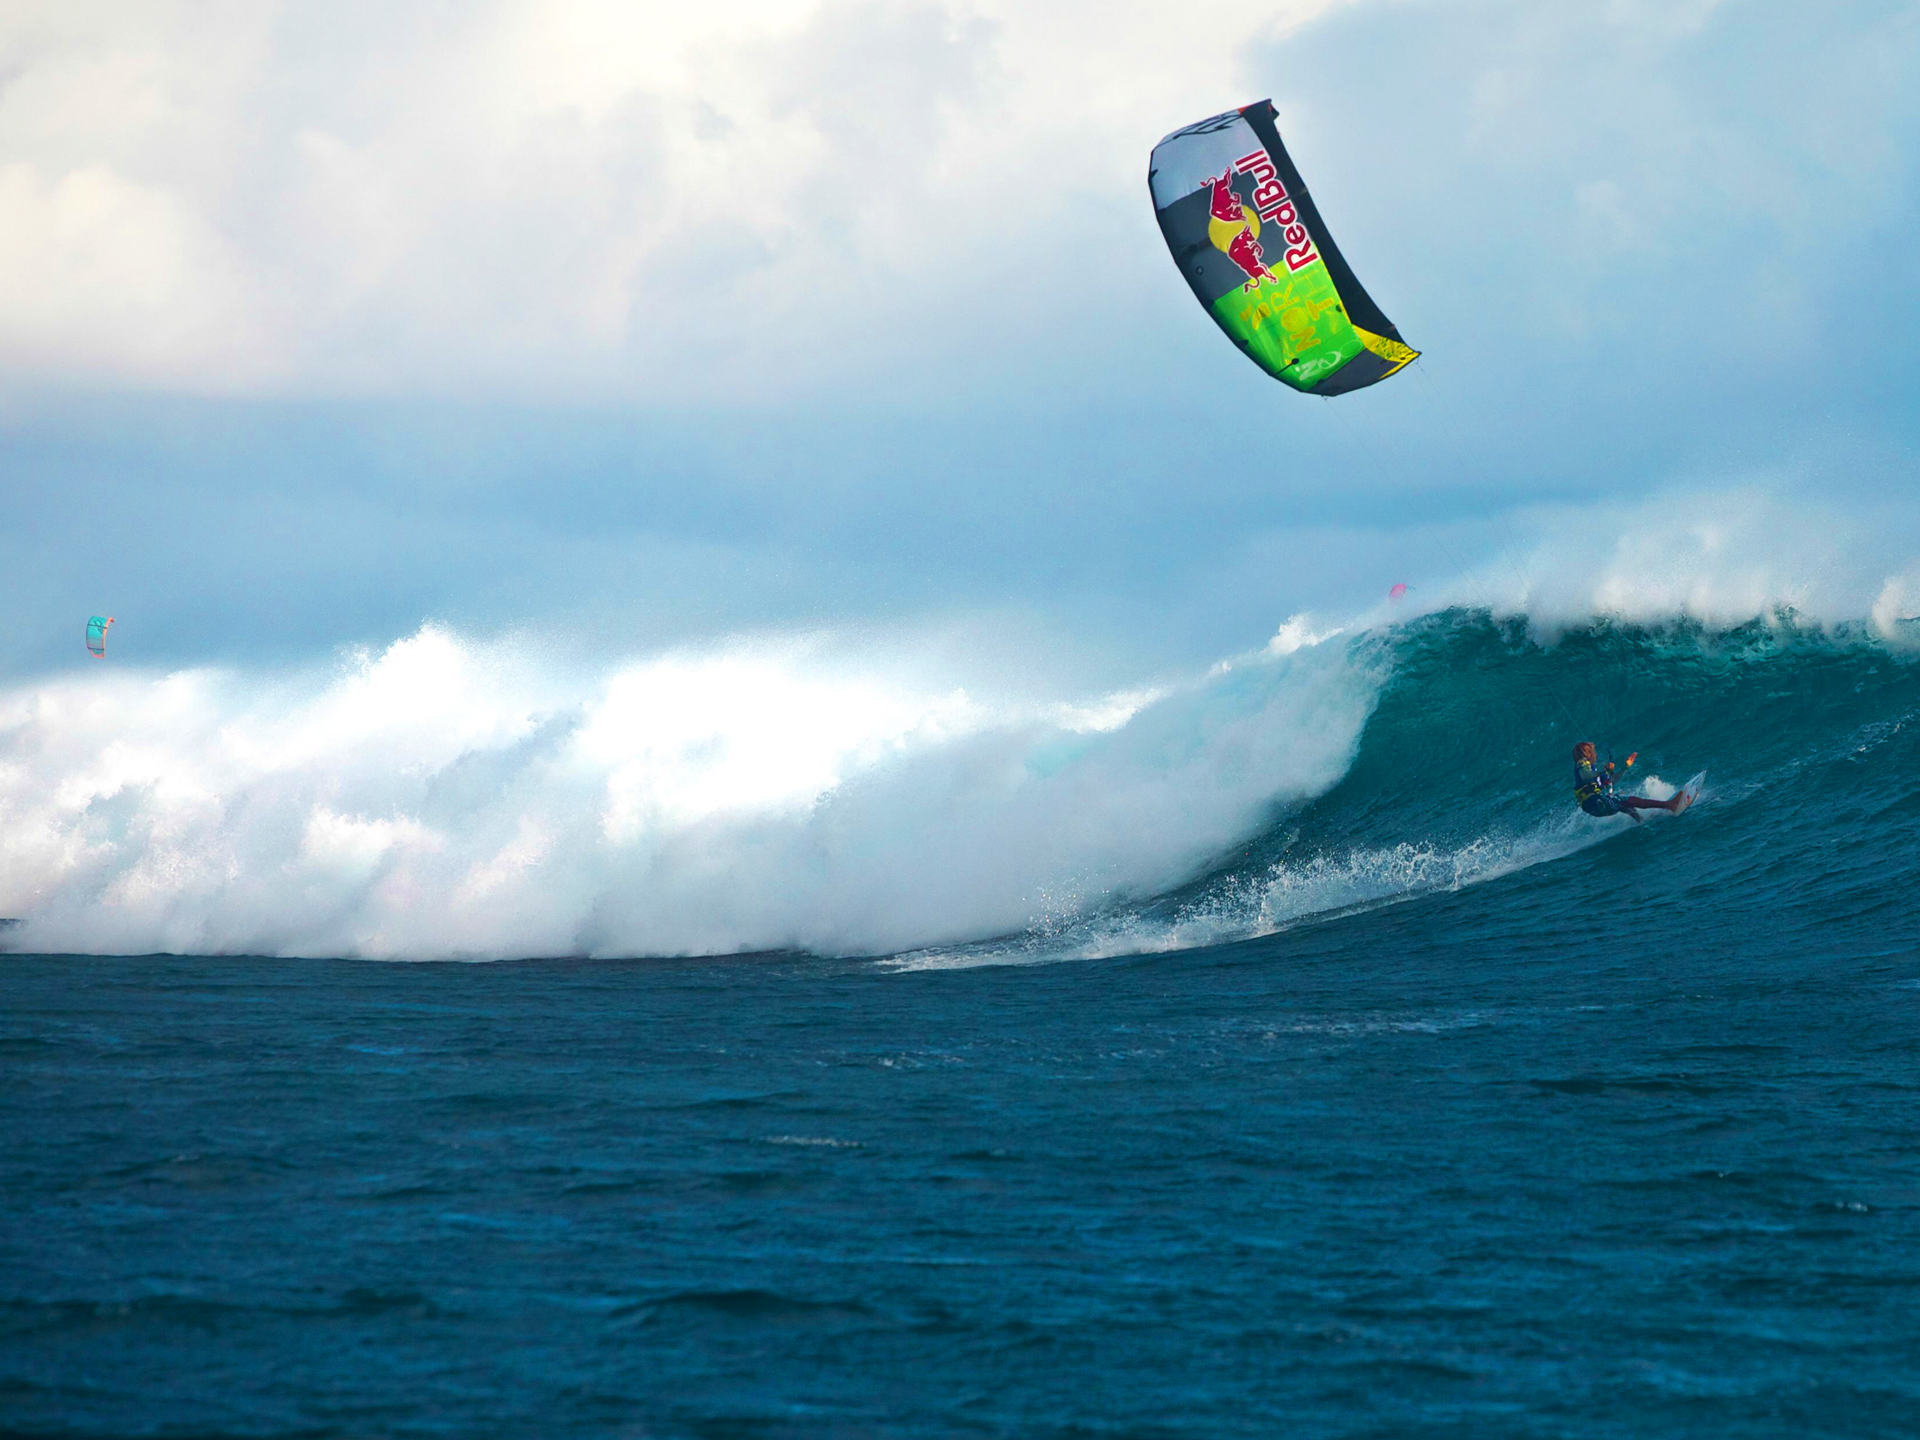 kitesurf wallpaper image - Airton Cozzolino loading up on a wave - in resolution: Standard 4:3 1920 X 1440